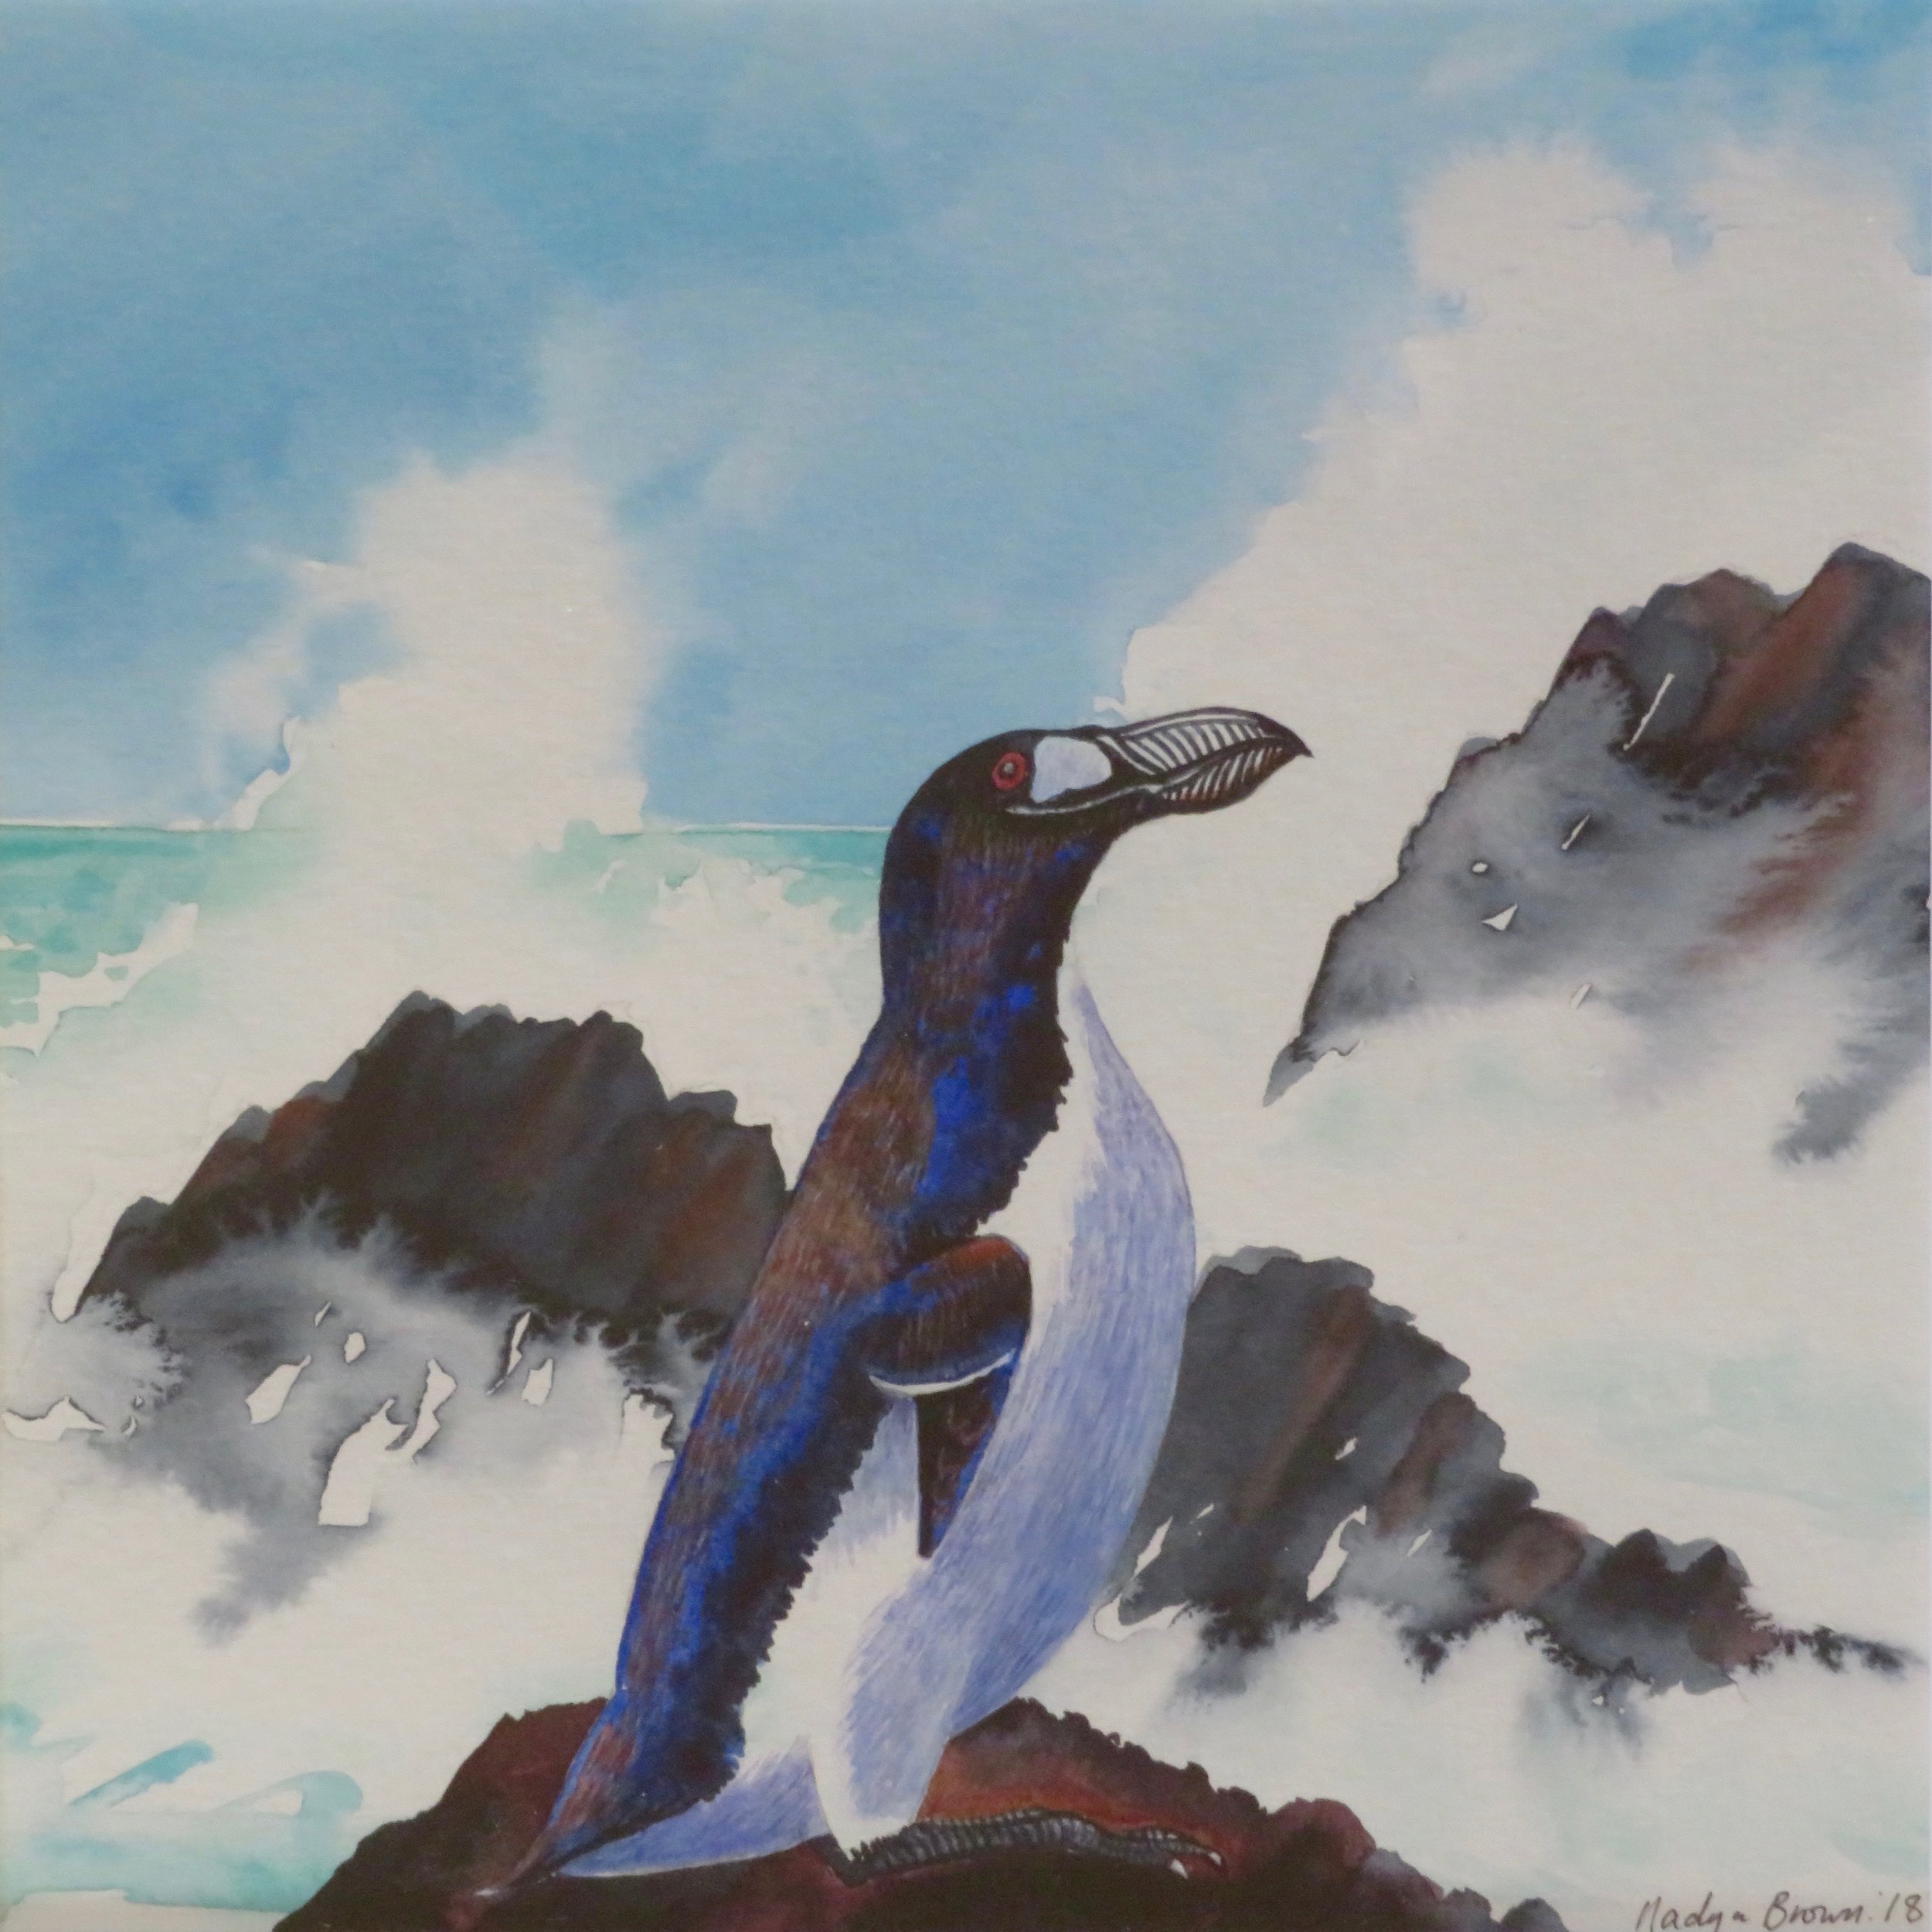 Great Auk, extinct